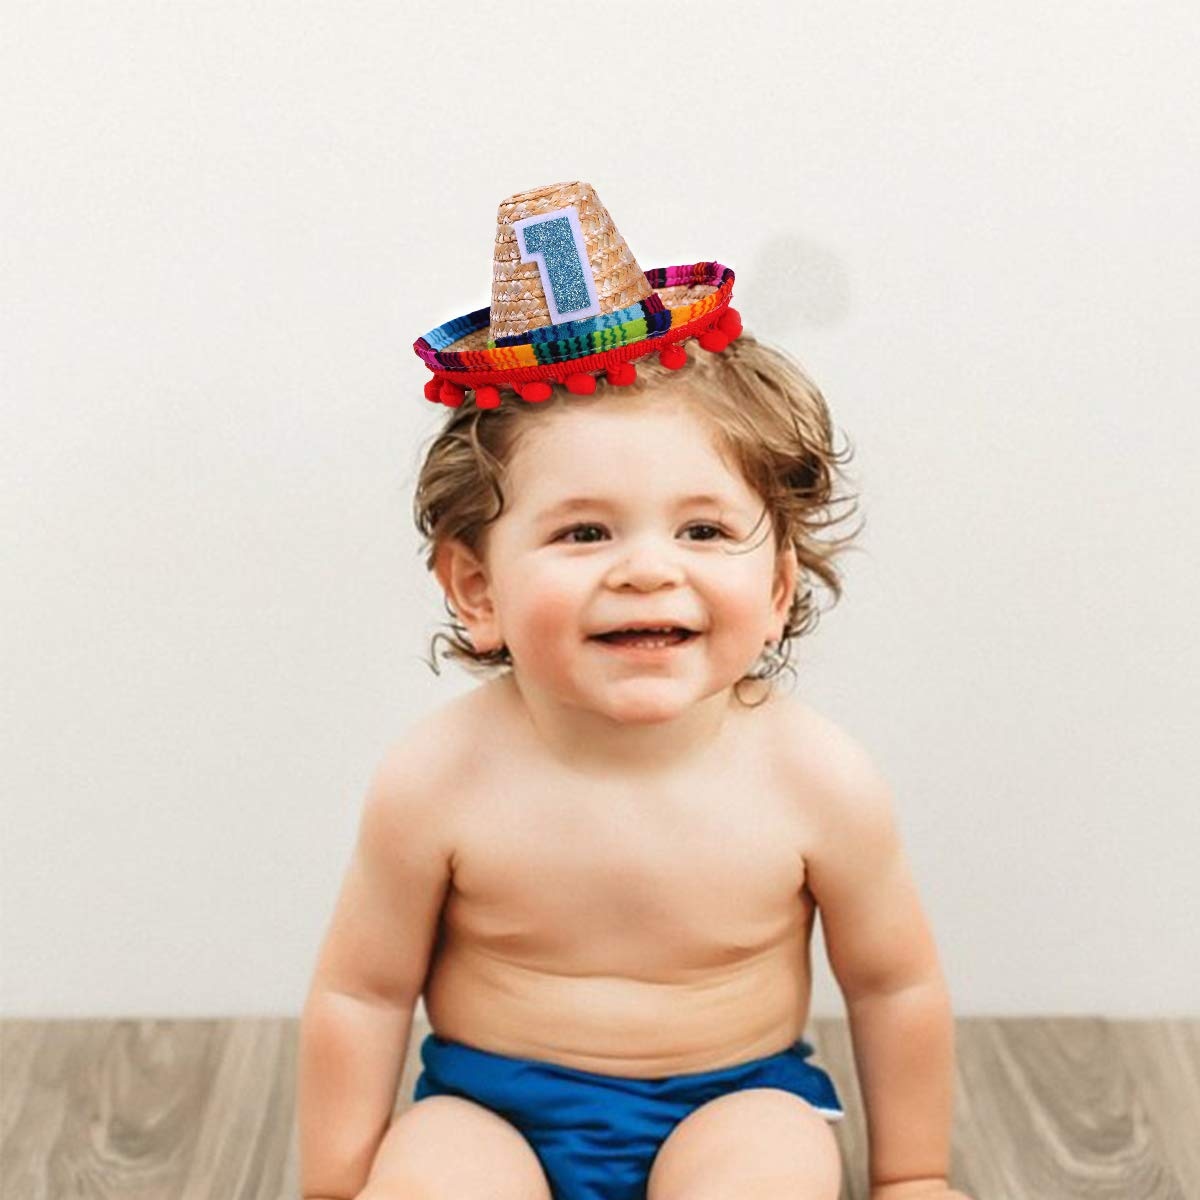 Mini Sombrero Hats for 1st Birthday - Fiesta Cupcake Toppers for Mexican  Party Decorations 5186a64ee5c5